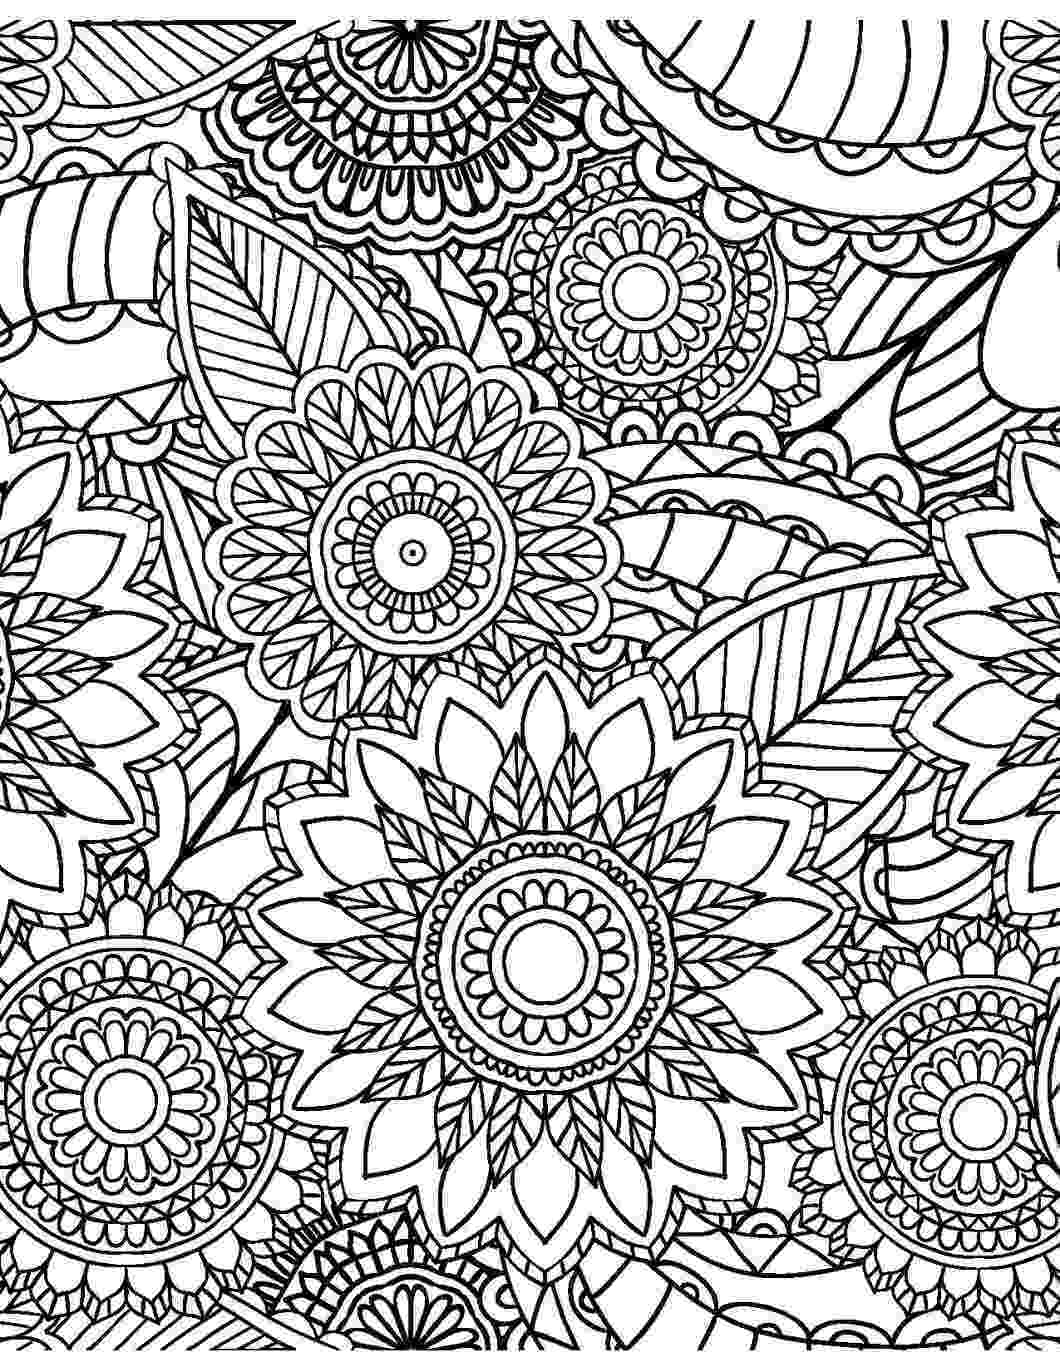 coloring pages for adults patterns free printable abstract coloring pages for adults adults patterns pages coloring for